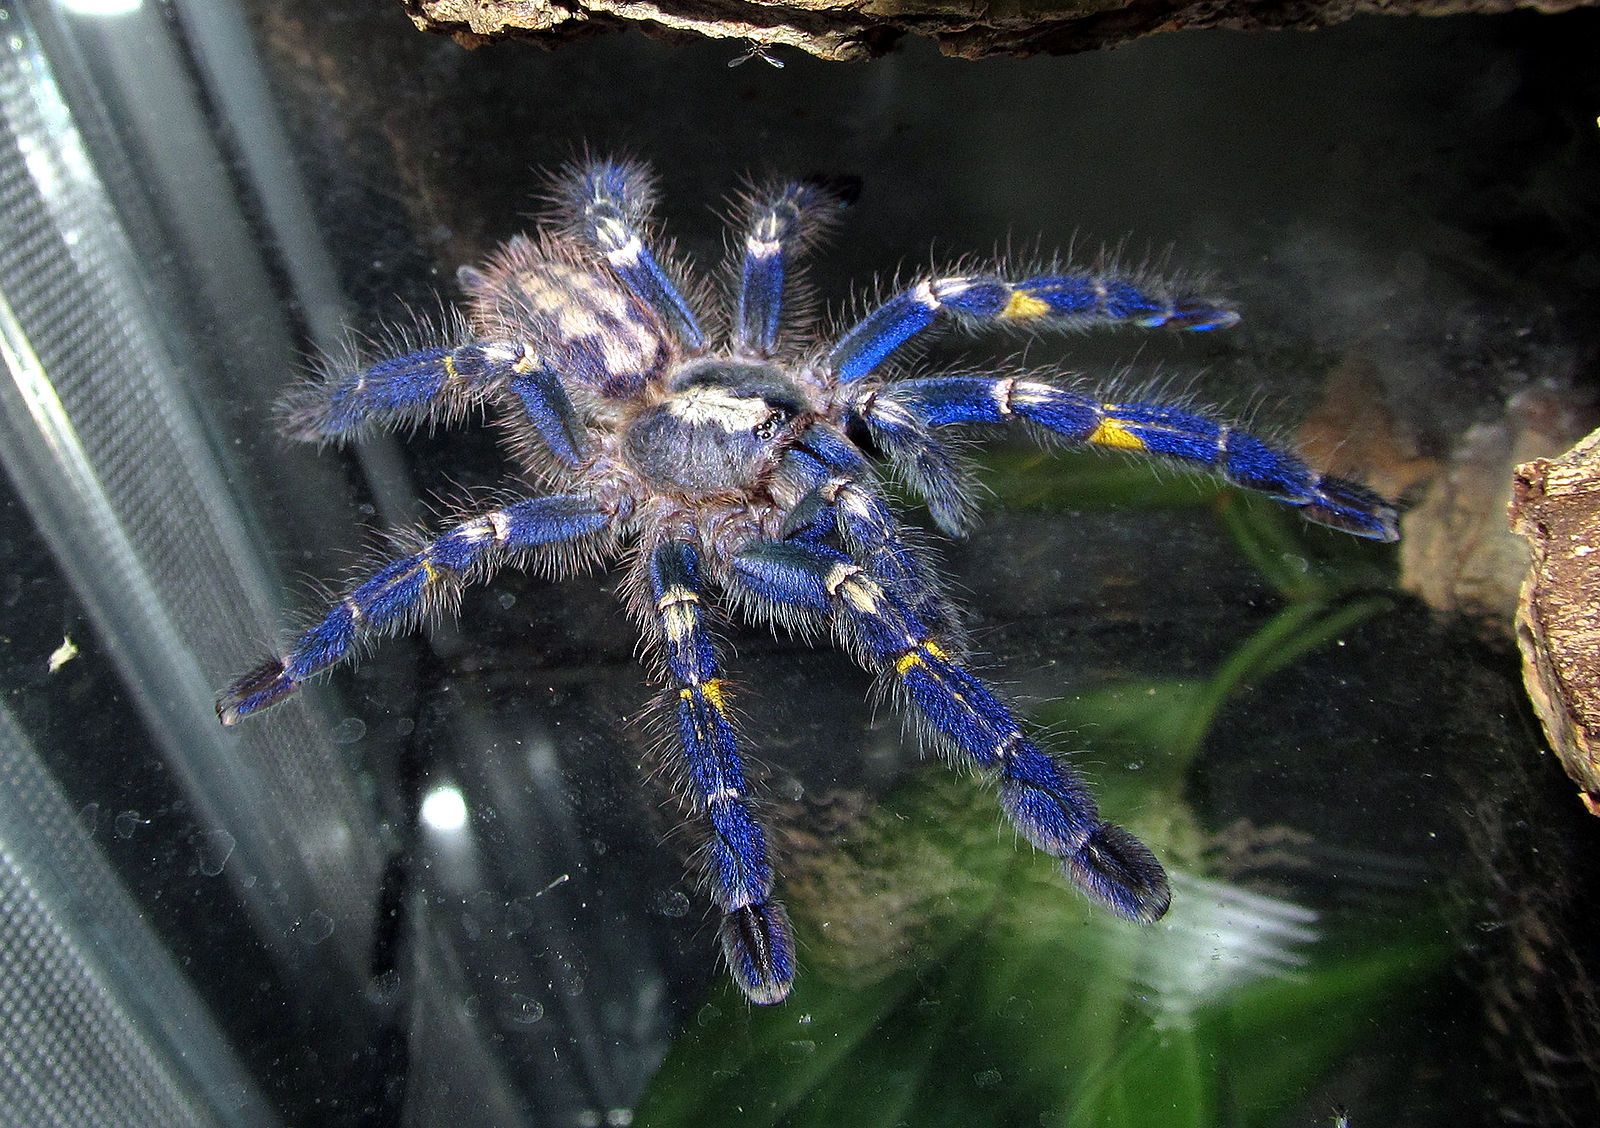 Electric-Blue Peacock Tarantula May Be One of the Most Eye-Catching Endangered Species